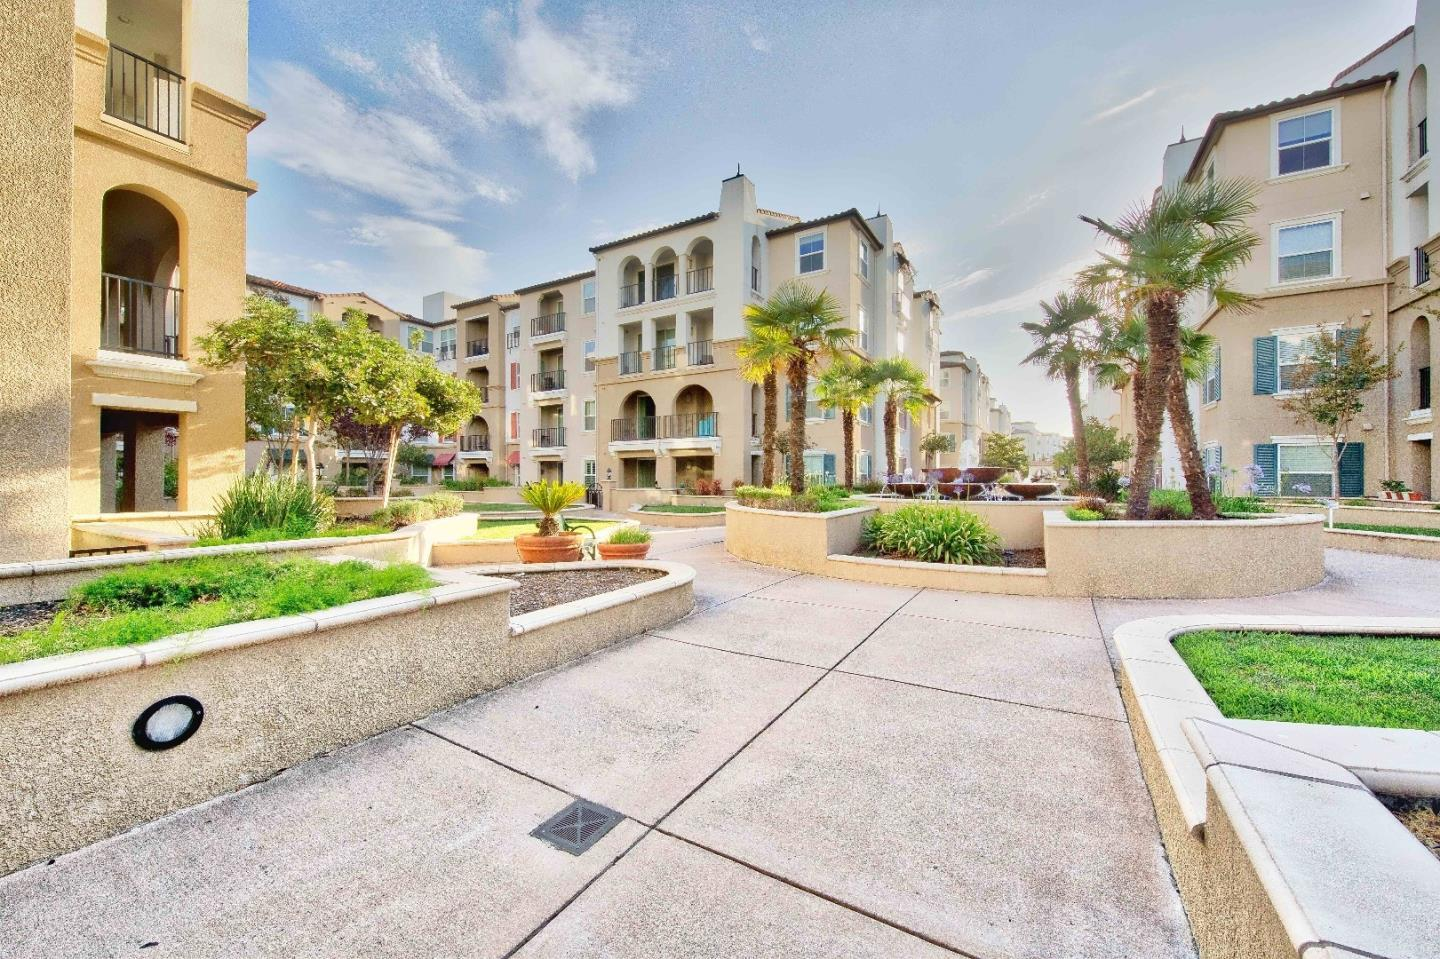 Image for 3245 Dublin Blvd Unit 129, <br>Dublin 94568